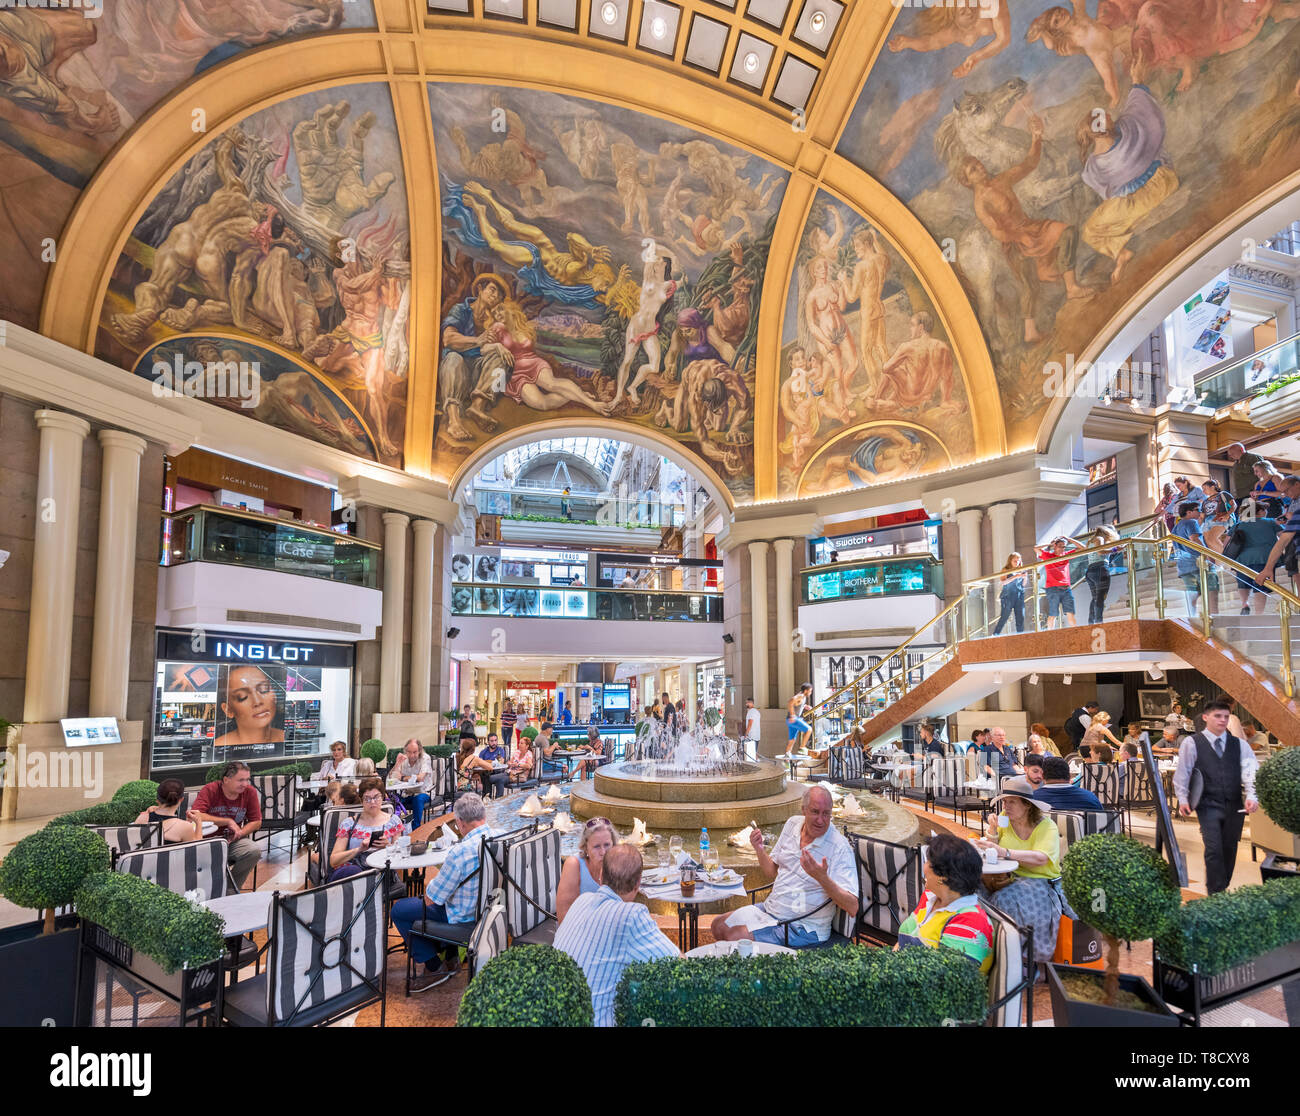 Buenos Aires Galerias Pacifico. Cafe inside the Galerías Pacífico, a popular shopping centre in the city centre, Buenos Aires, Argentina - Stock Image